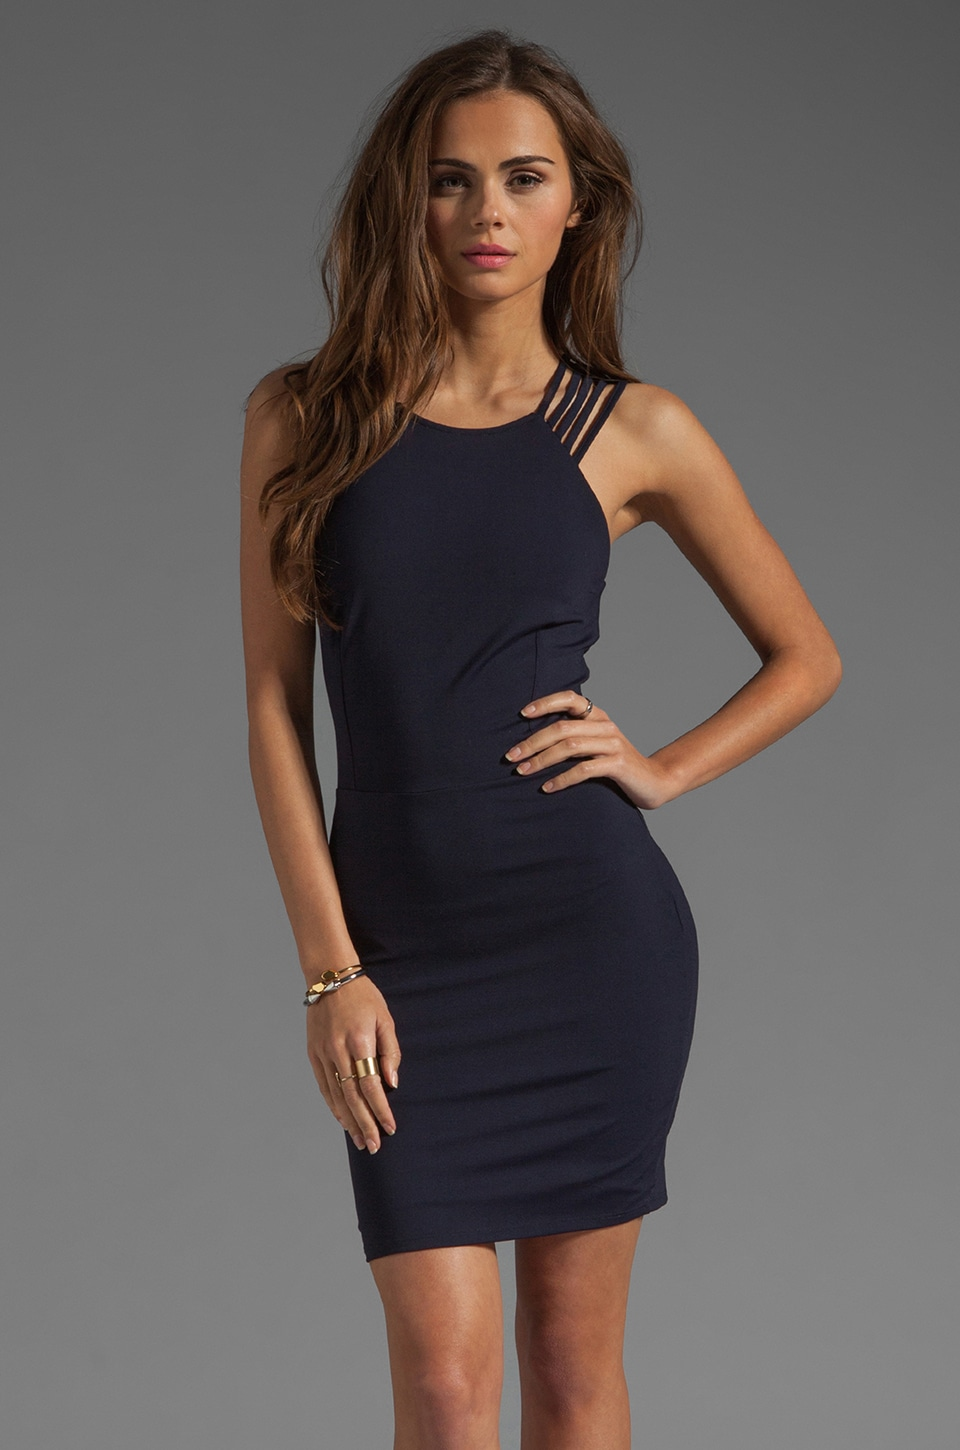 Donna Mizani Ultra Soft Multi Strap Dress in Navy